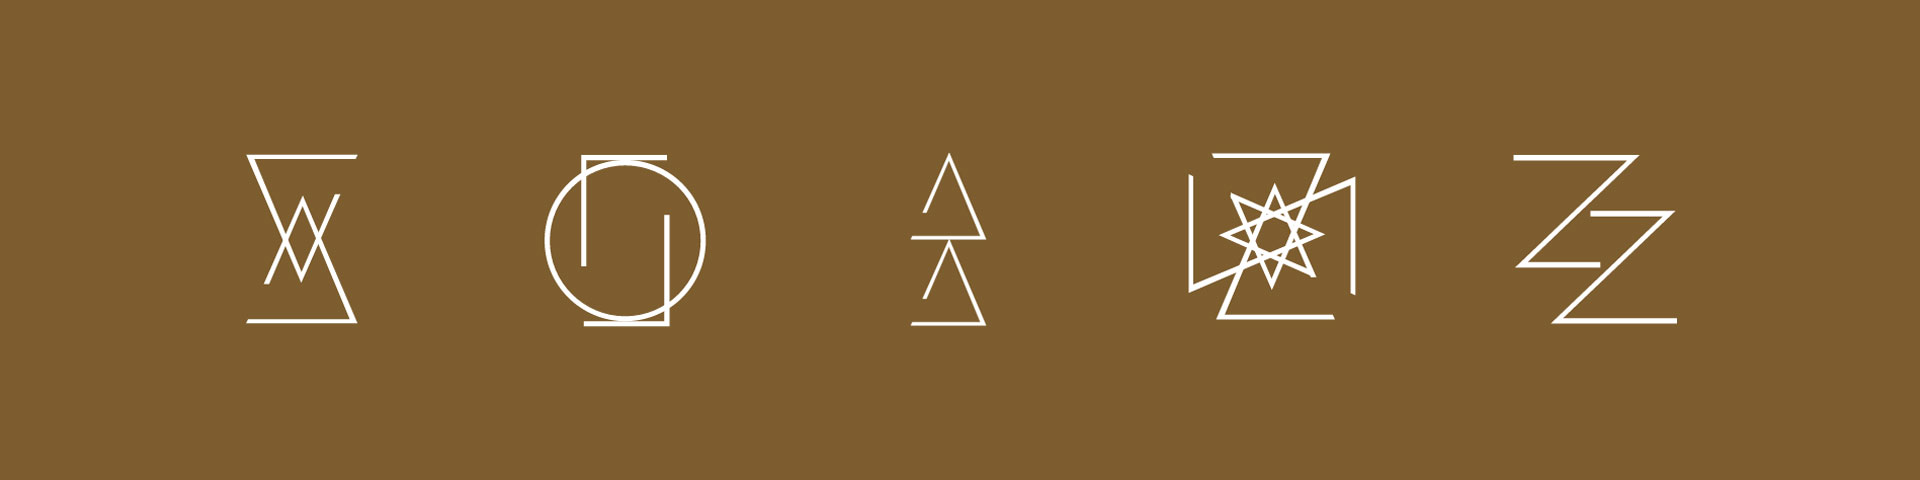 ananda-icon-set-design